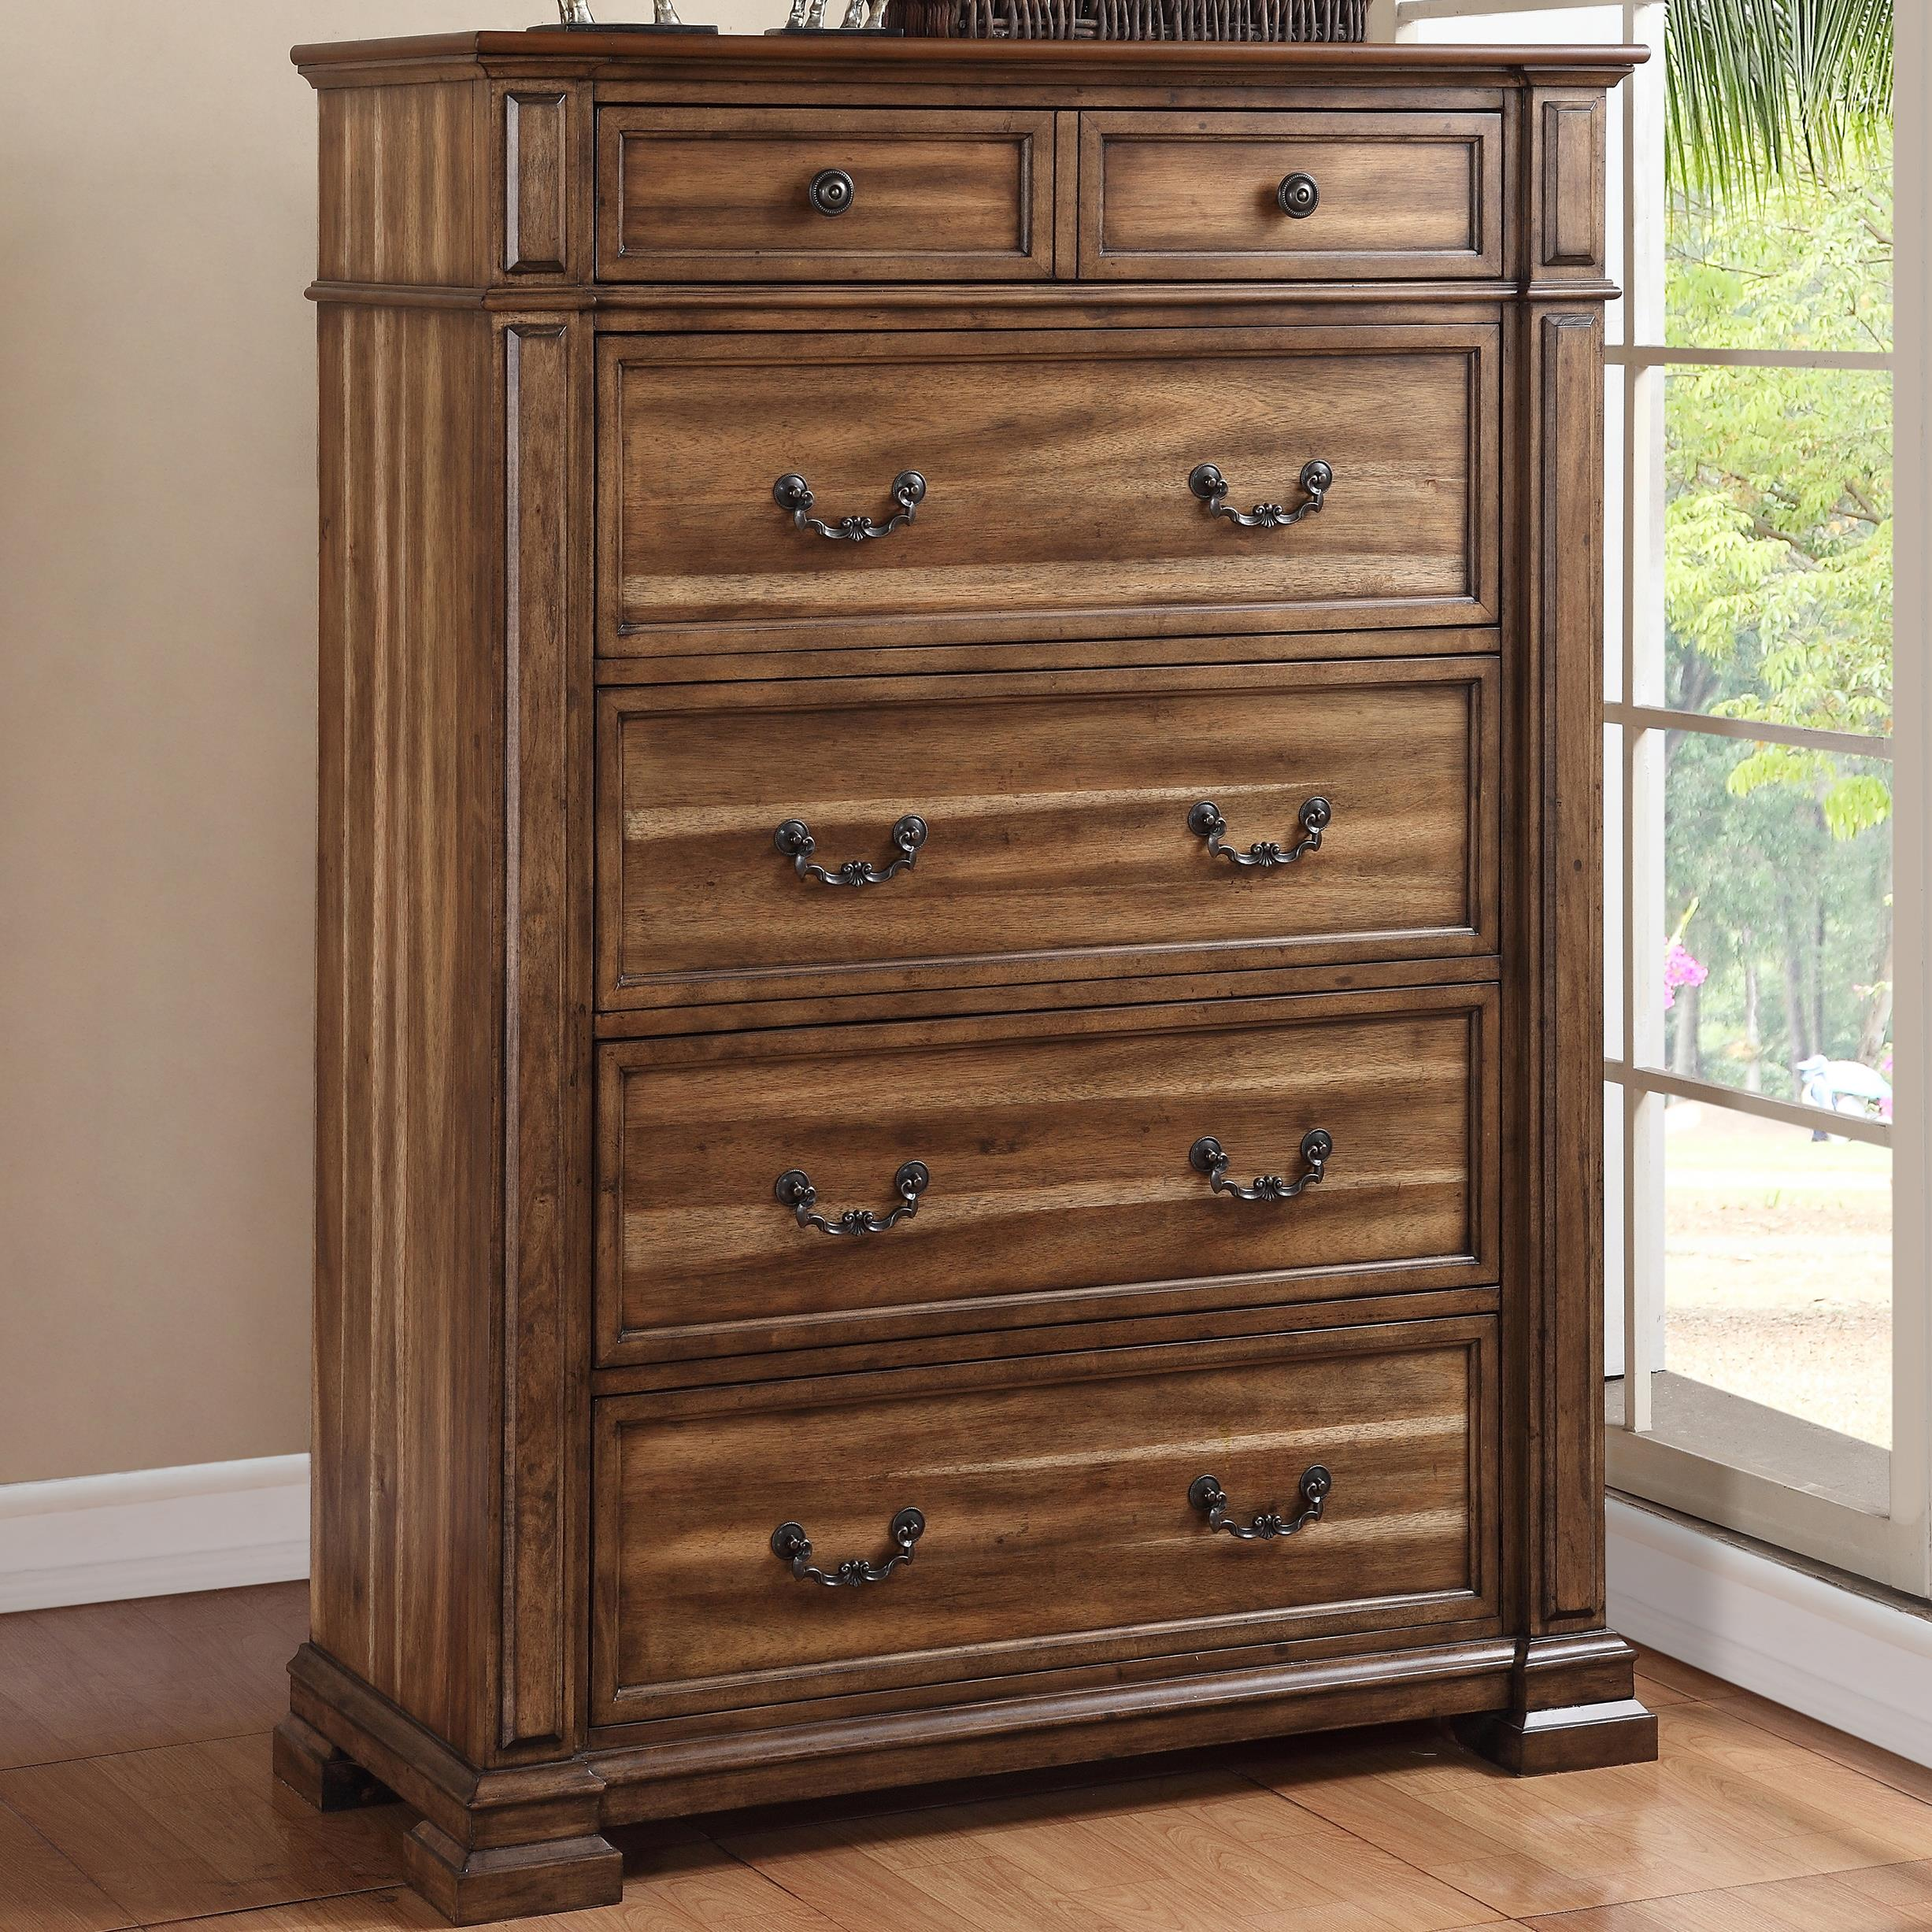 Legends Furniture Barclay Chest - Item Number: ZBCL-7016